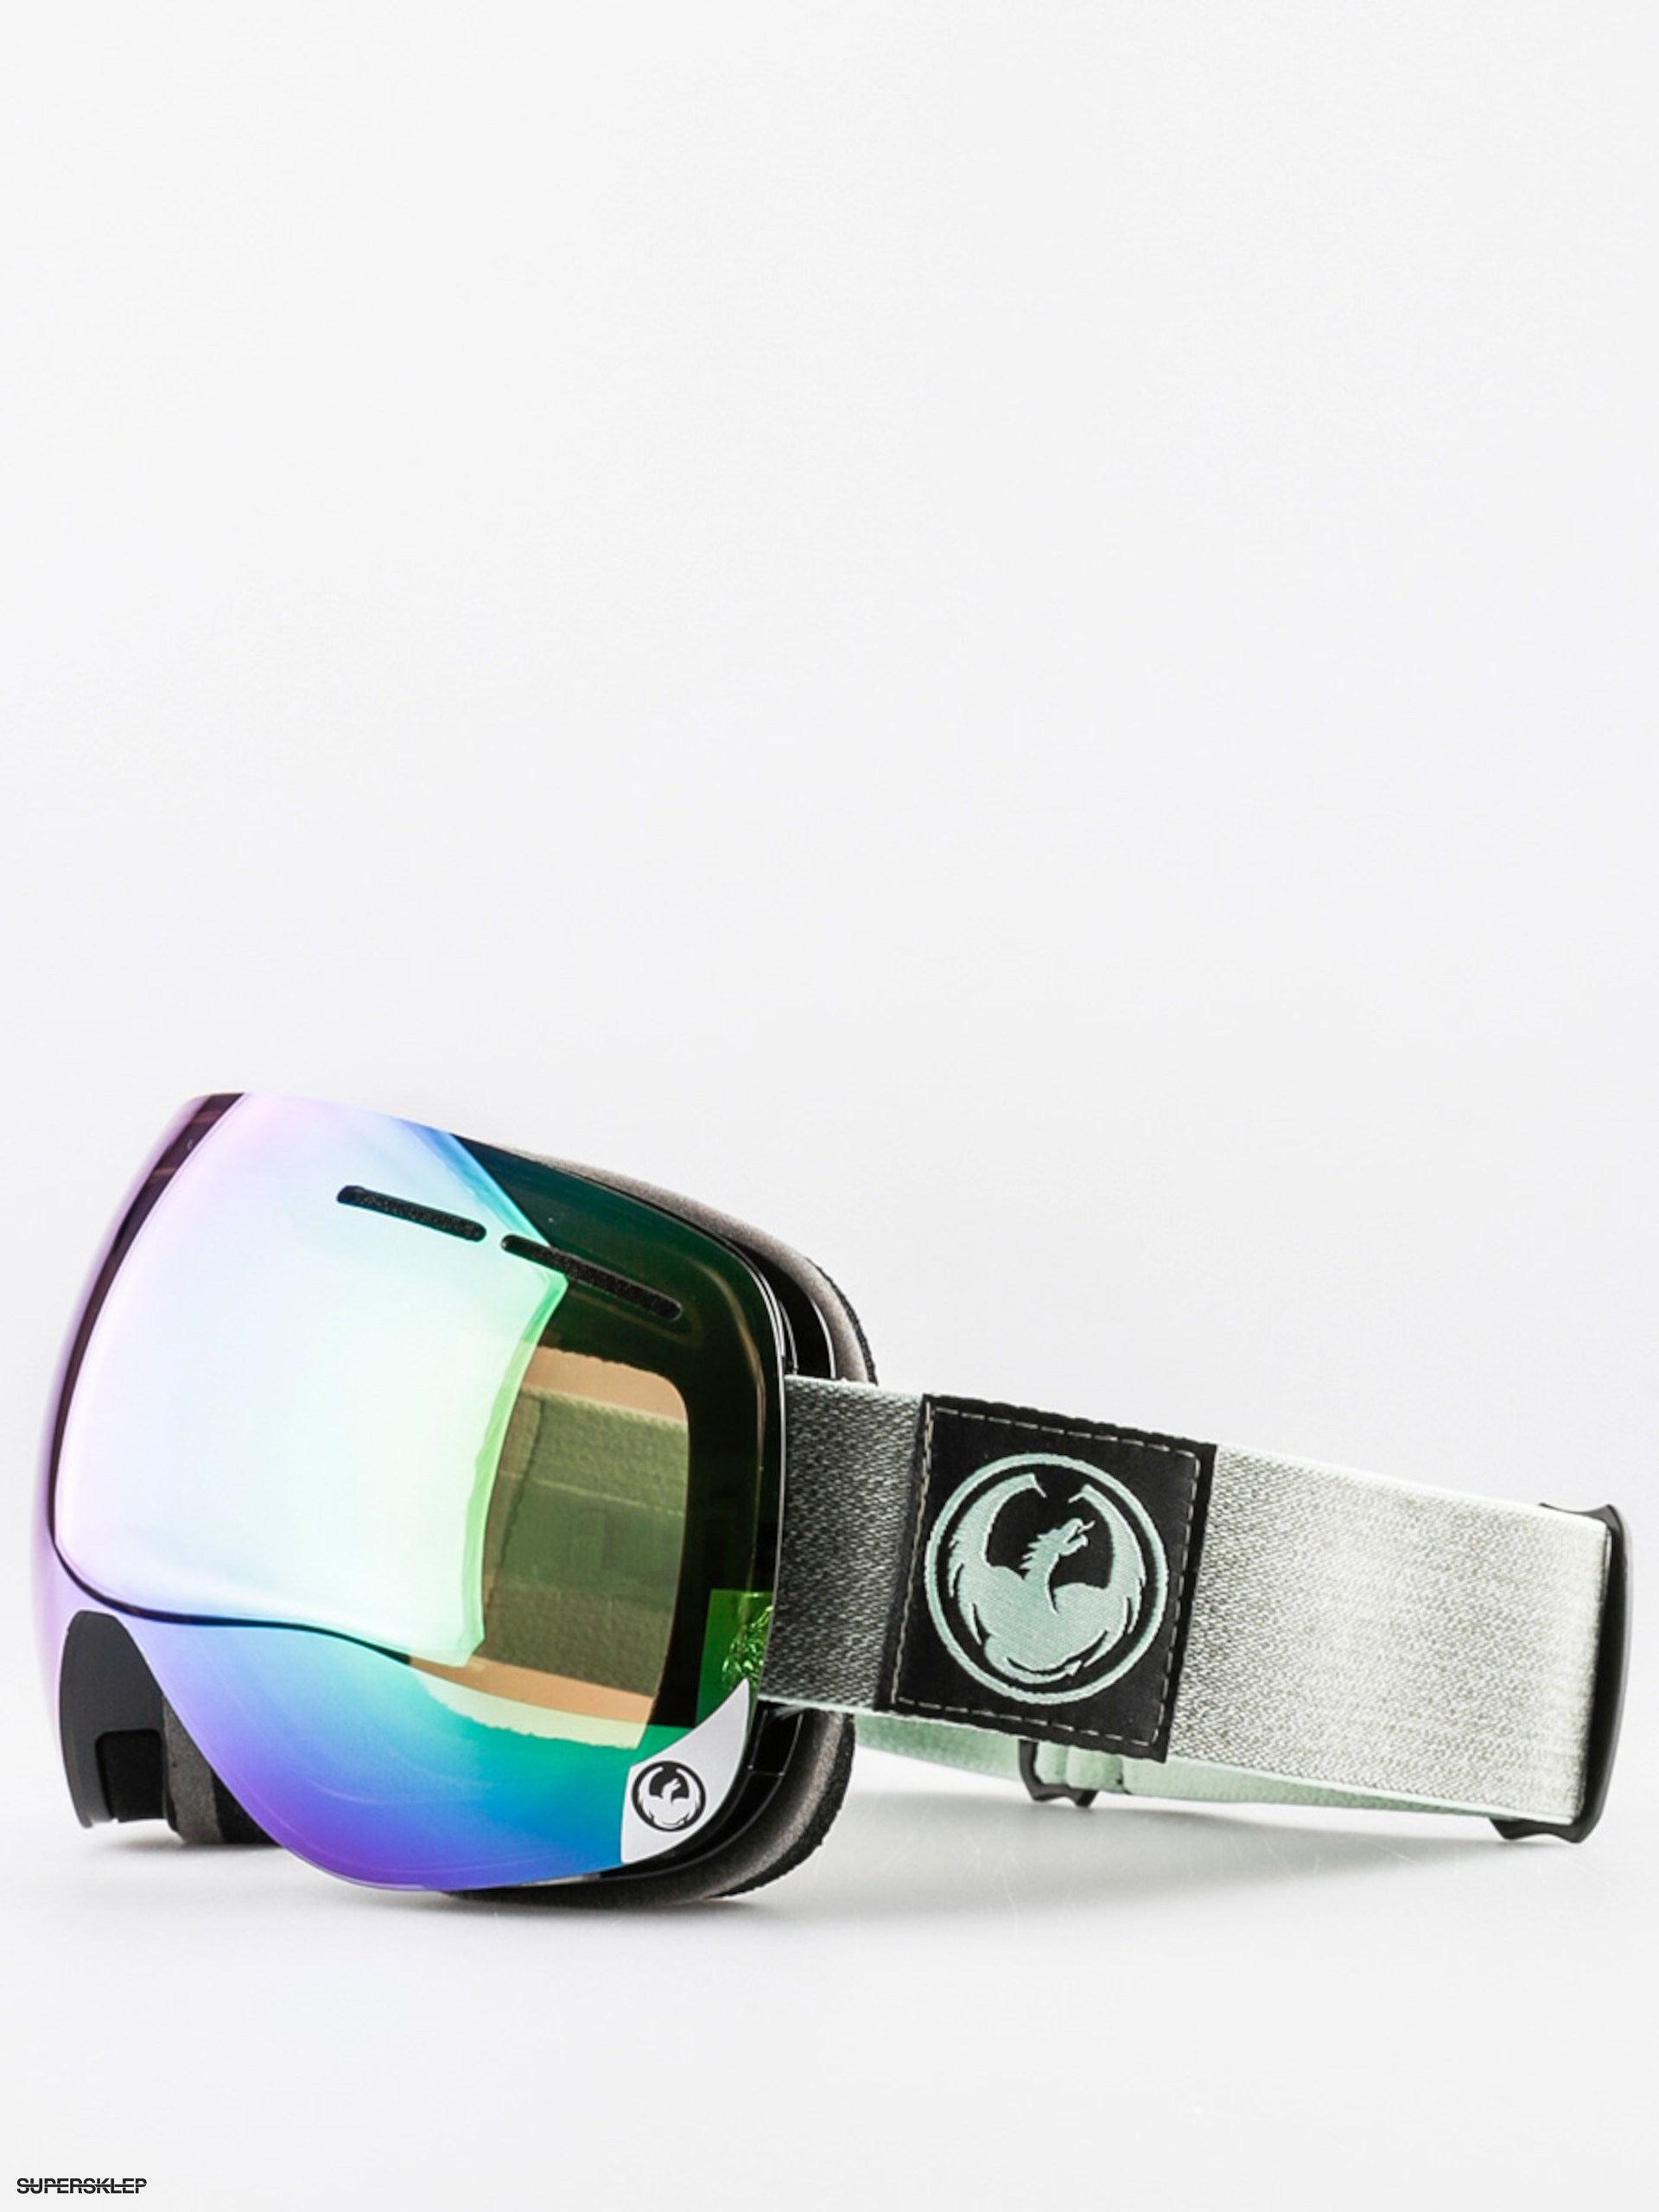 Okuliare na snowboard Dragon X1s (hone emerald optimized flash green/optimized flash blue)